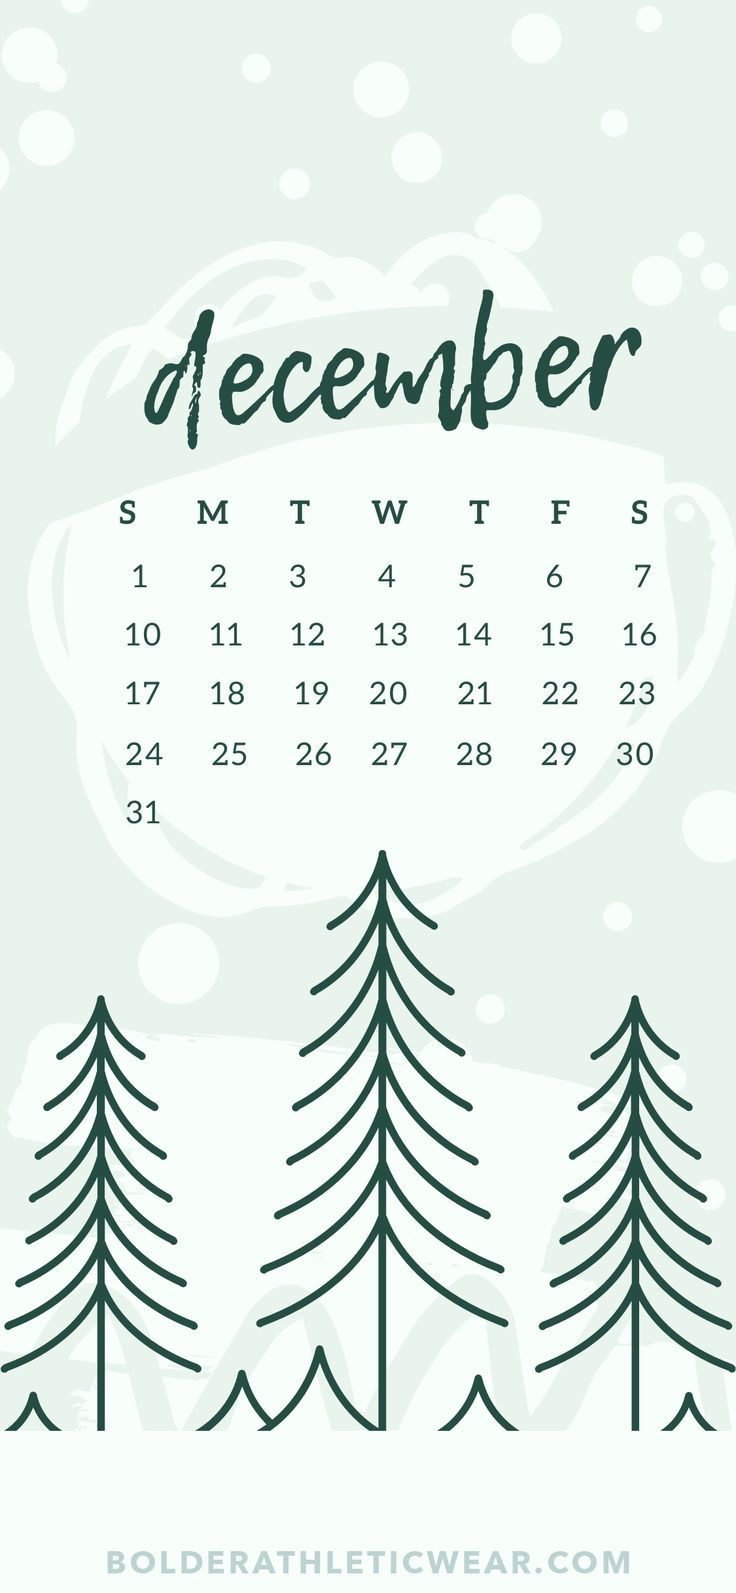 Downloadable Iphone And Ipad Wallpapers For December Calendar Wallpaper December Wallpaper Iphone Ipad Wallpaper